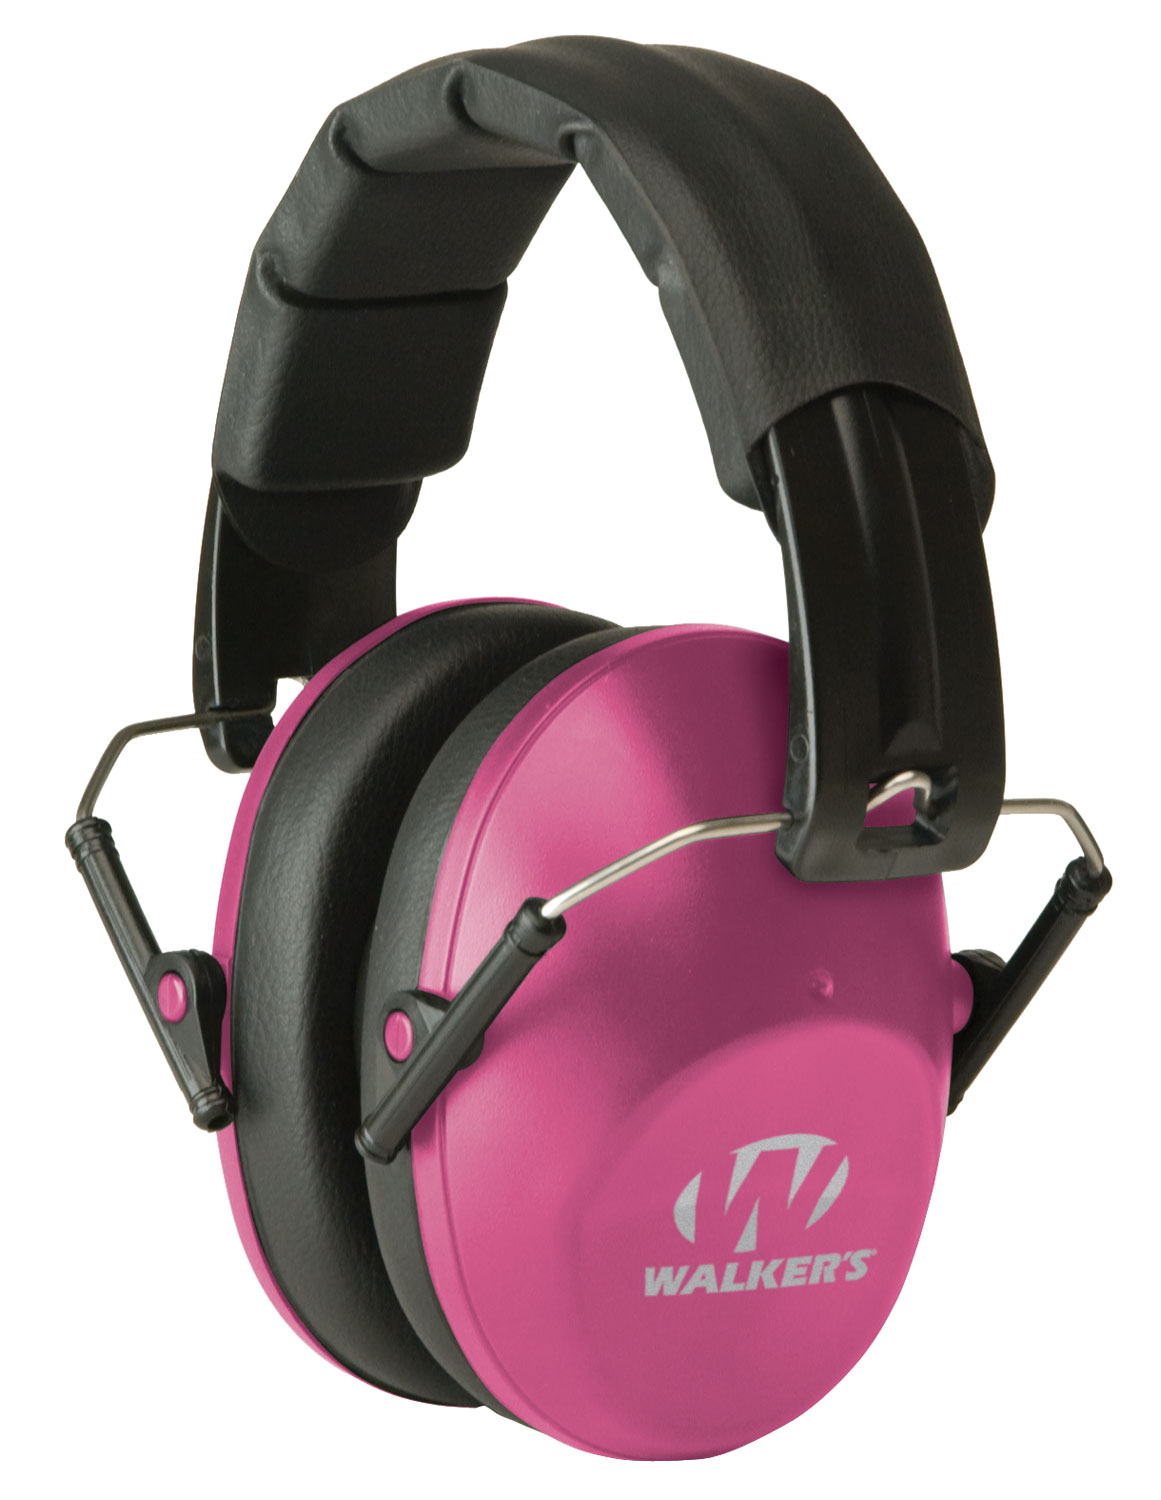 WALKERS MUFF SHOOTING PASSIVE PRO-LOW PROFILE 31dB PINK